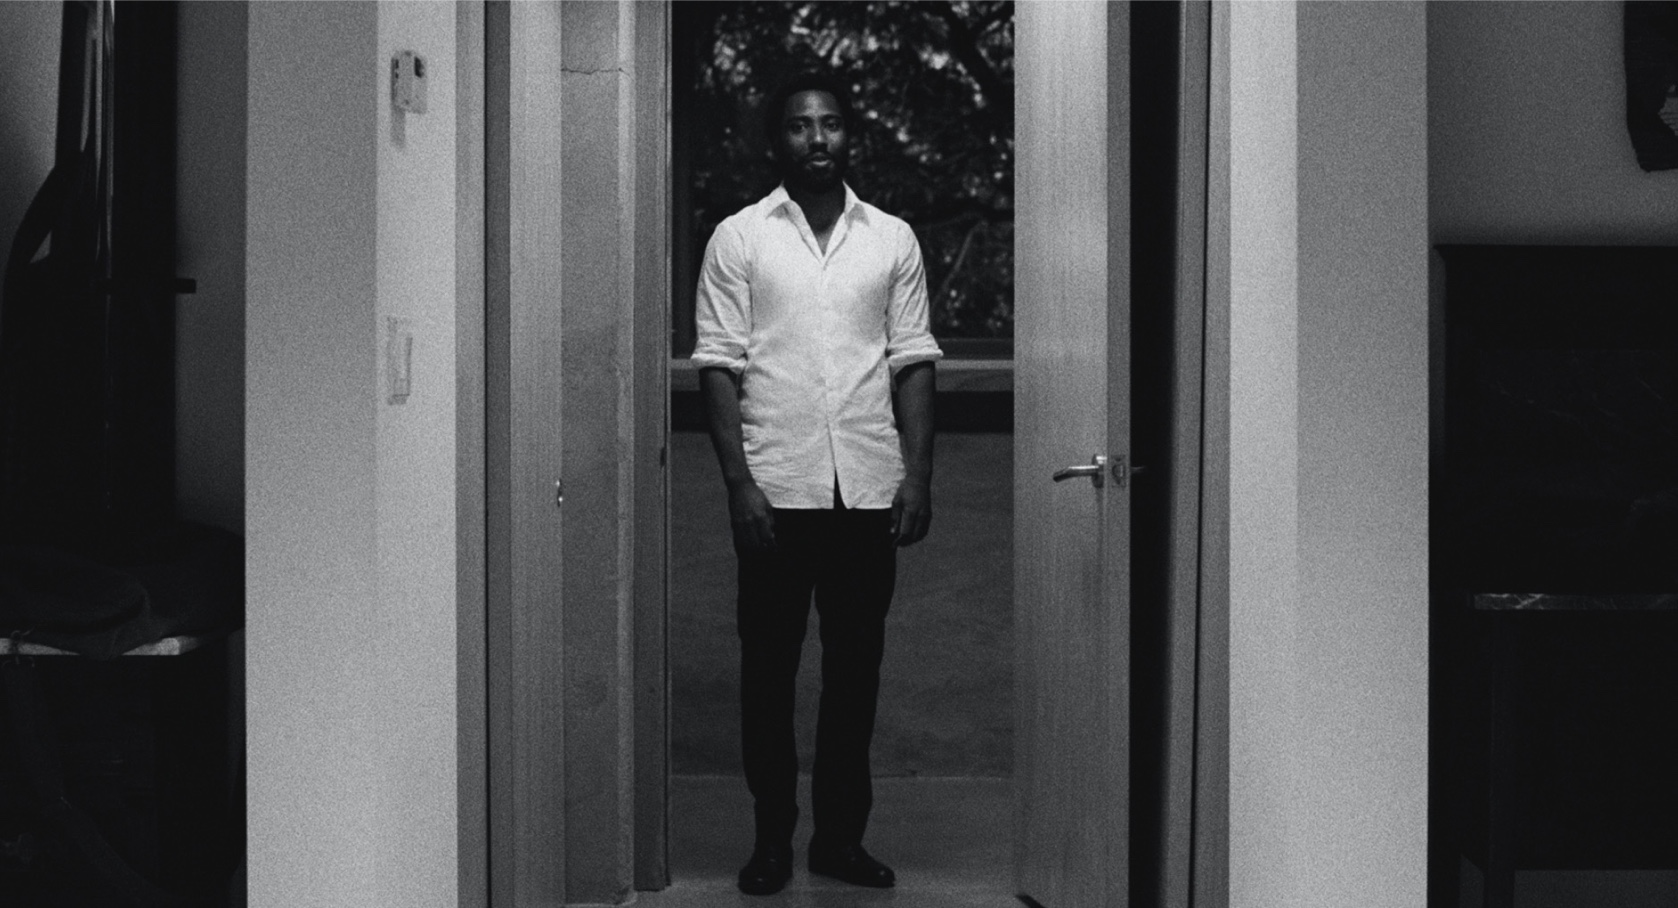 Malcolm framed in a doorway, wearing a white shirt with the sleeves rolled up.